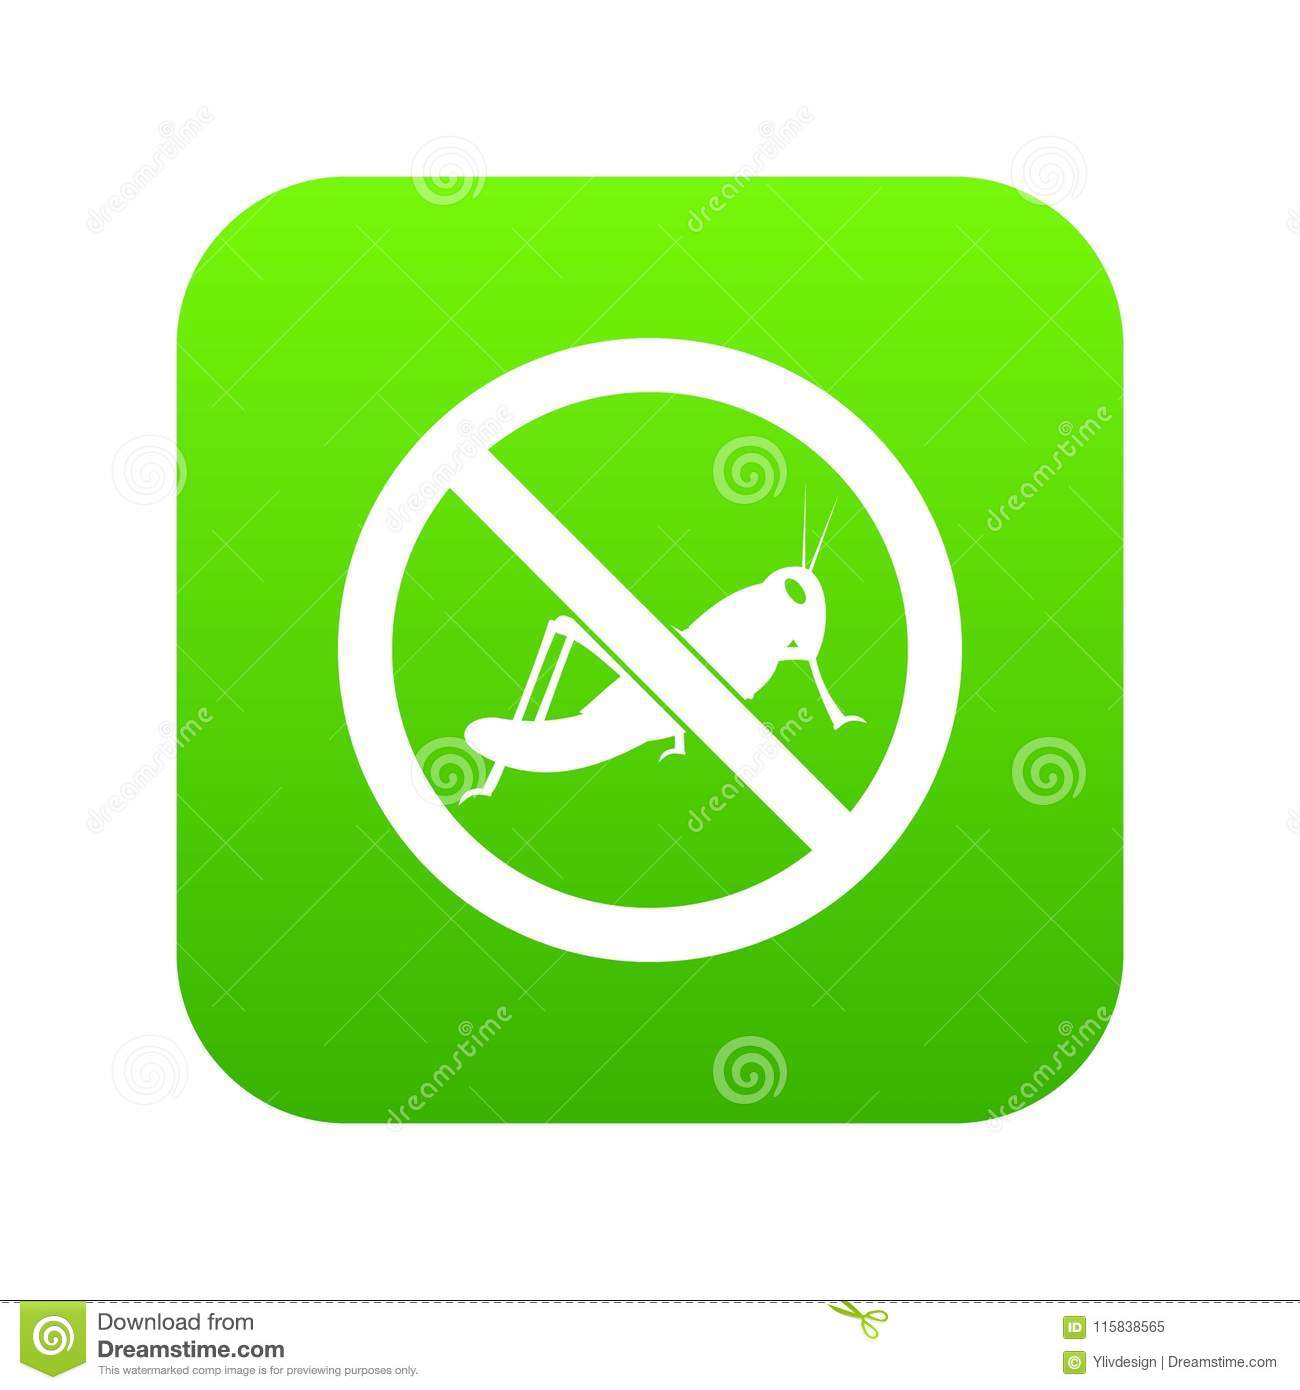 No locust sign icon digital green